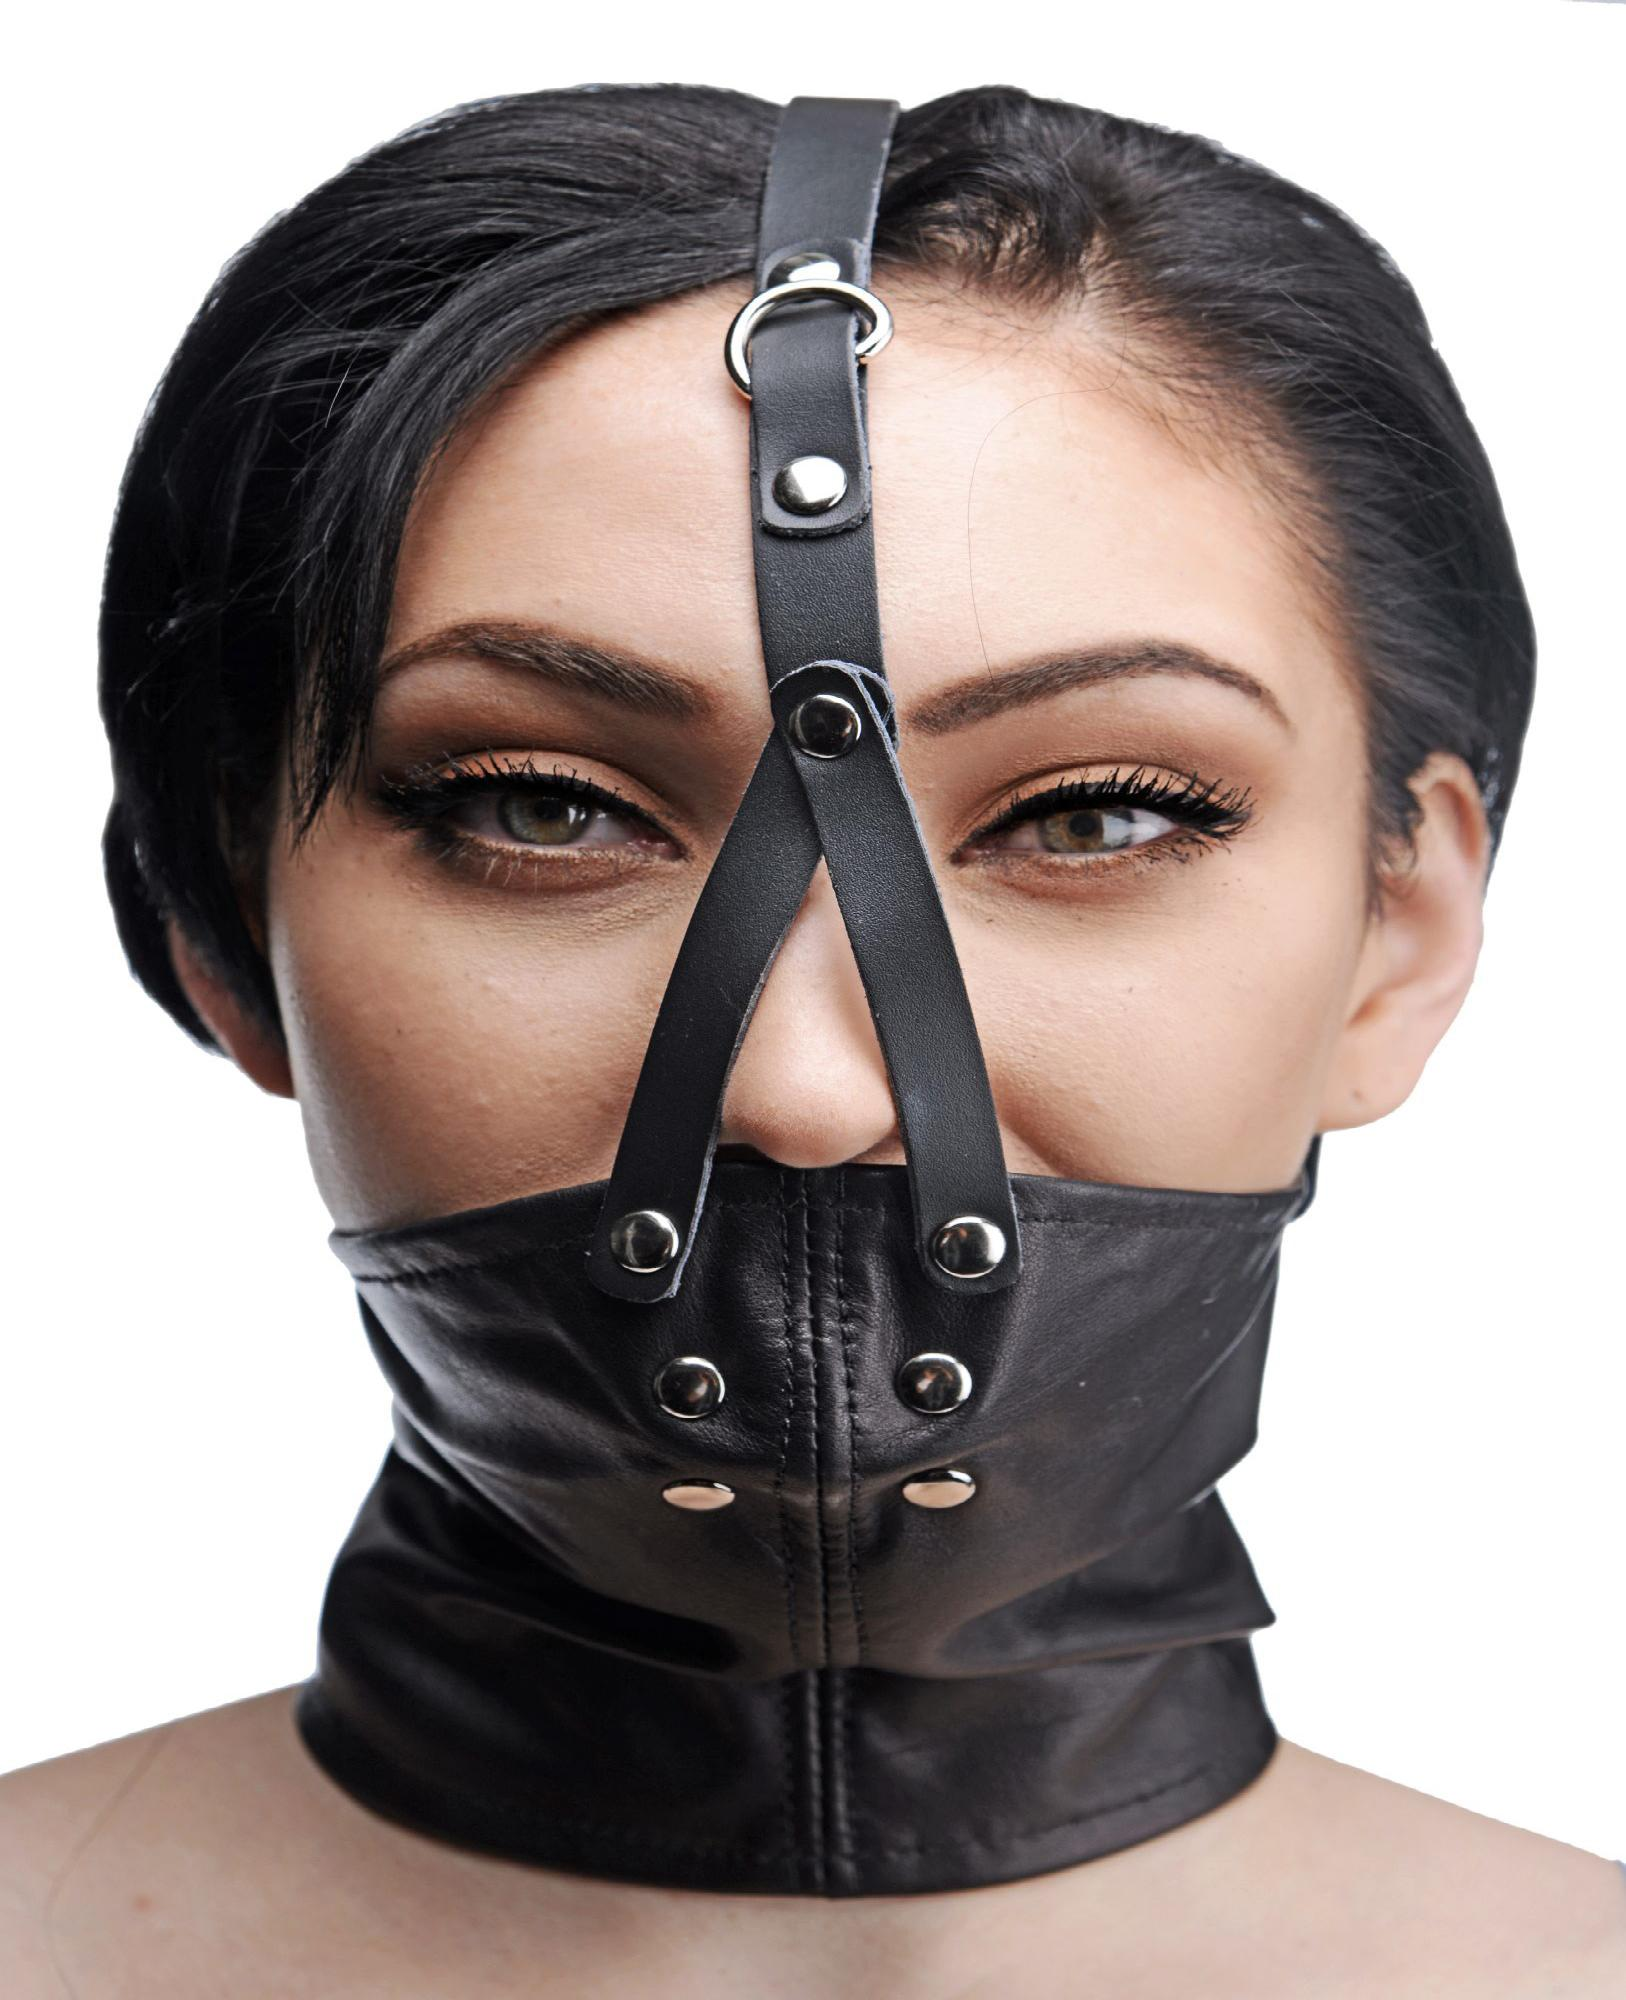 Leather Neck Corset Harness with Stuffer Gag